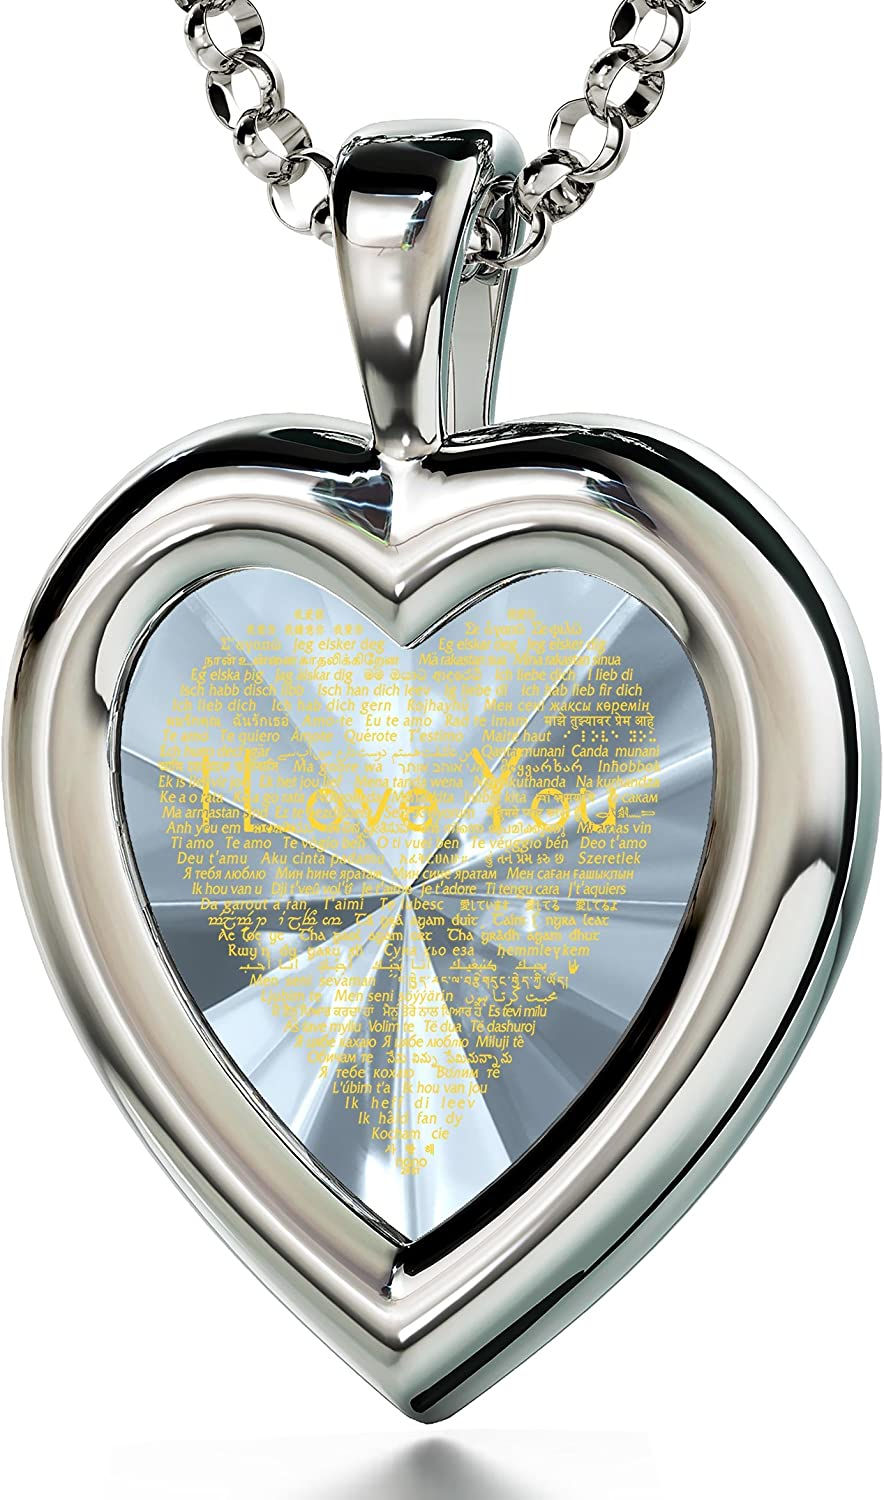 "925 Sterling Silver Heart Pendant I Love You Necklace 24k Gold Inscribed in 120 Languages in Miniature Text on Sparkling Brilliant Cut Heart-Shaped Cubic Zirconia Gemstone, 18"" Rolo Chain"